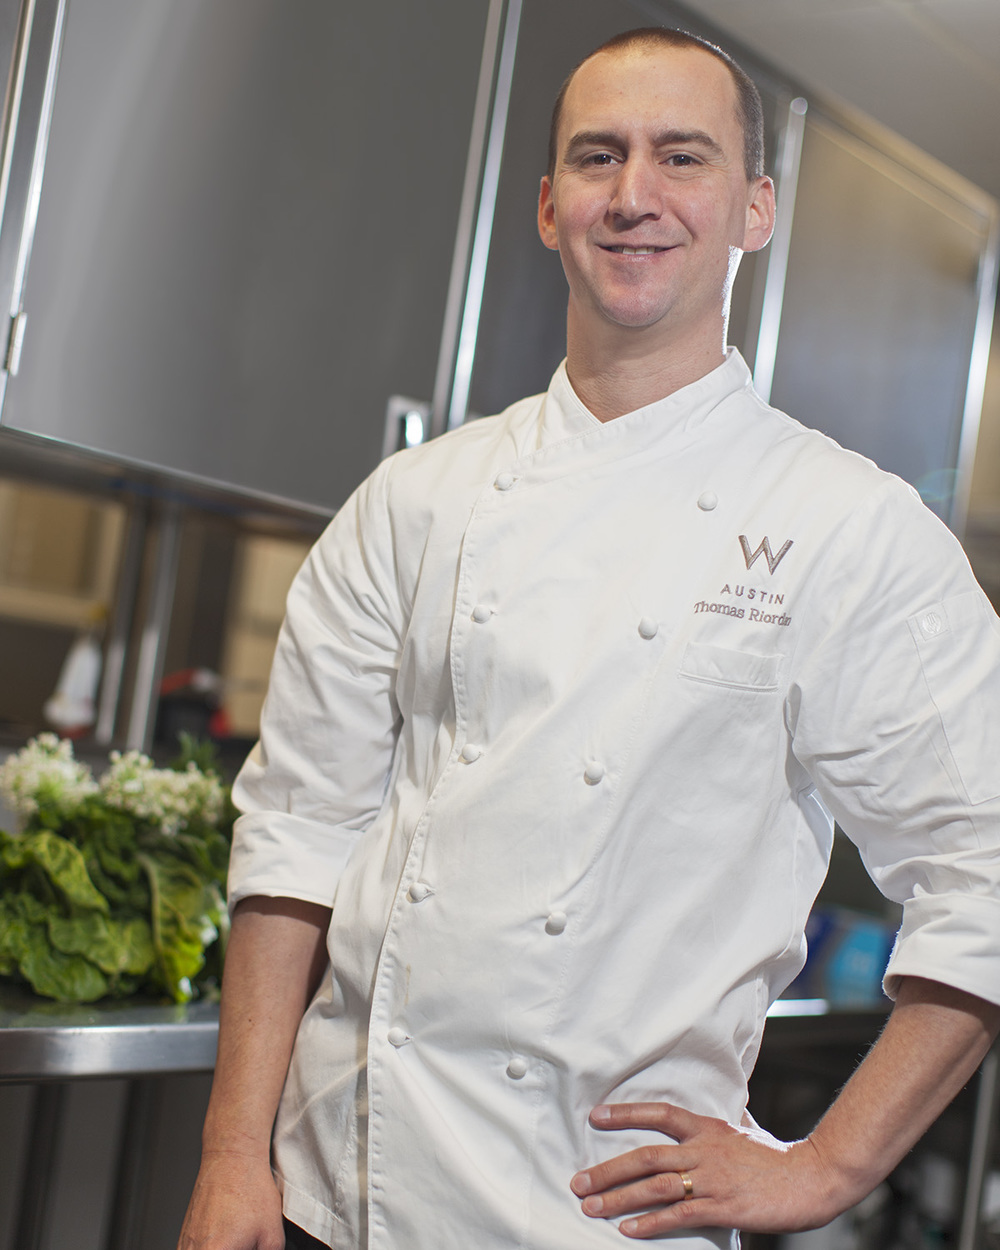 Thomas Riordan, Executive Chef